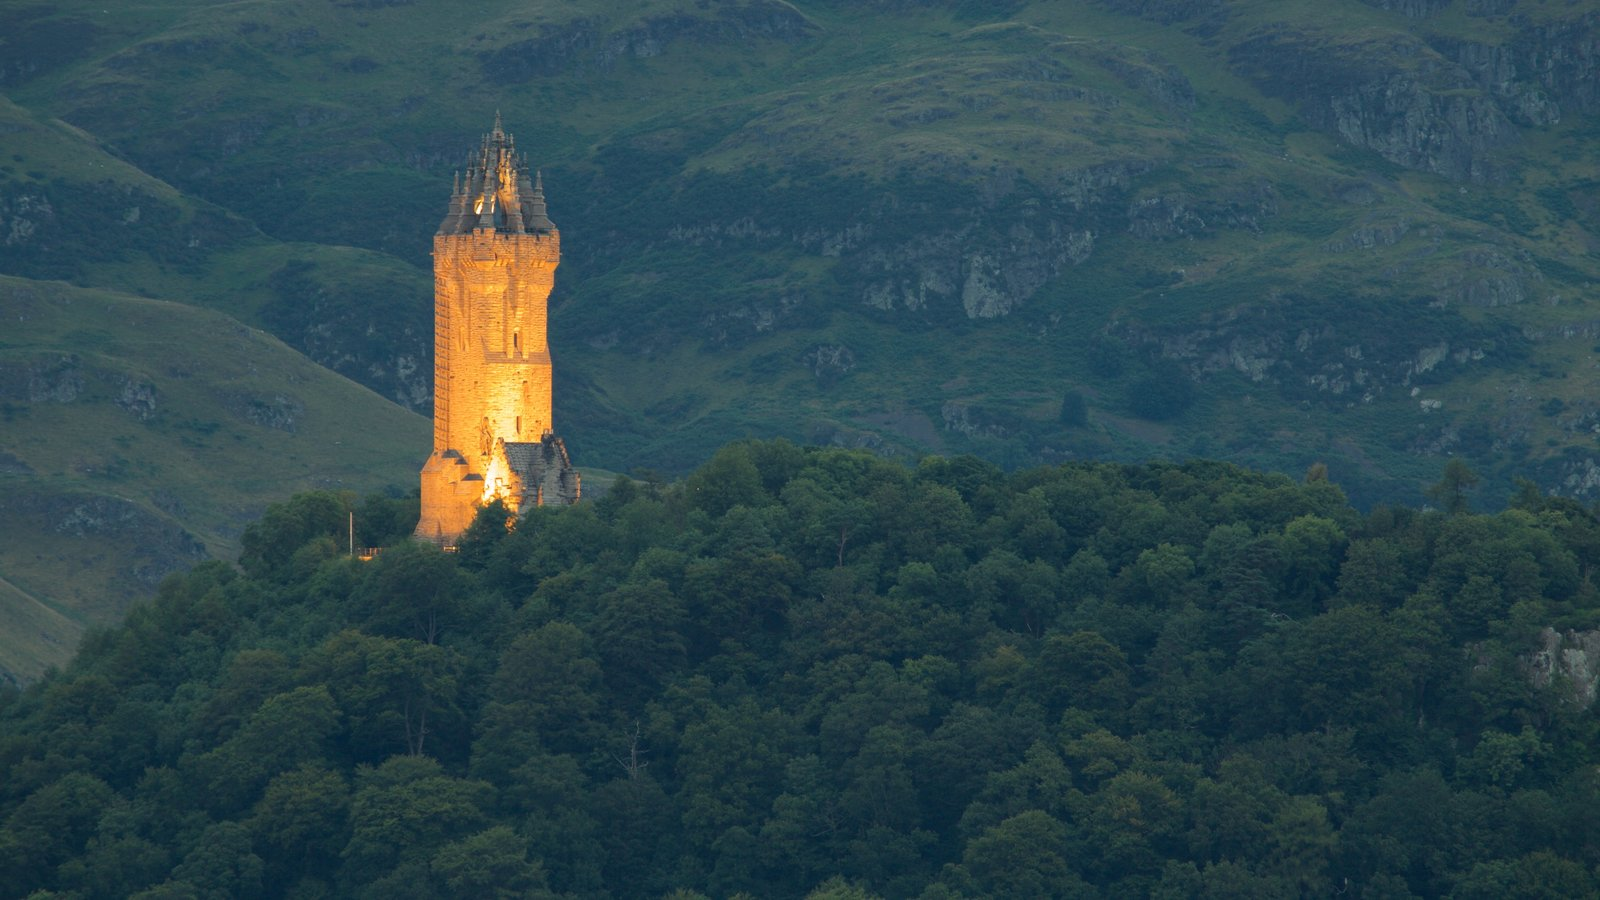 National Wallace Monument which includes night scenes, forests and a monument